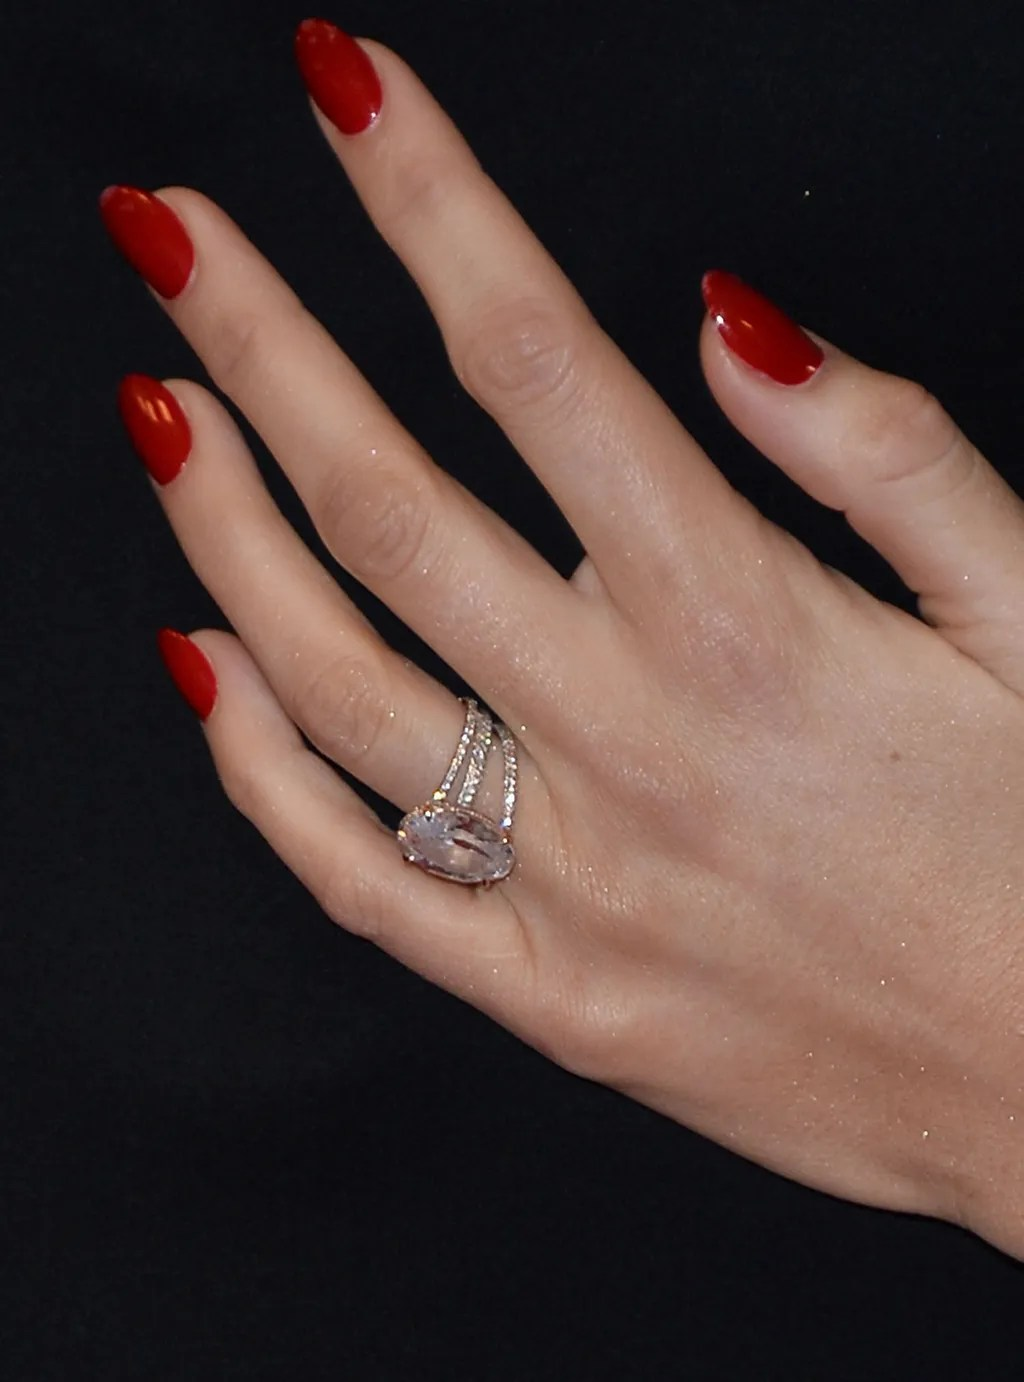 Blake Lively Engagement Ring Pictures Ryan Reynolds